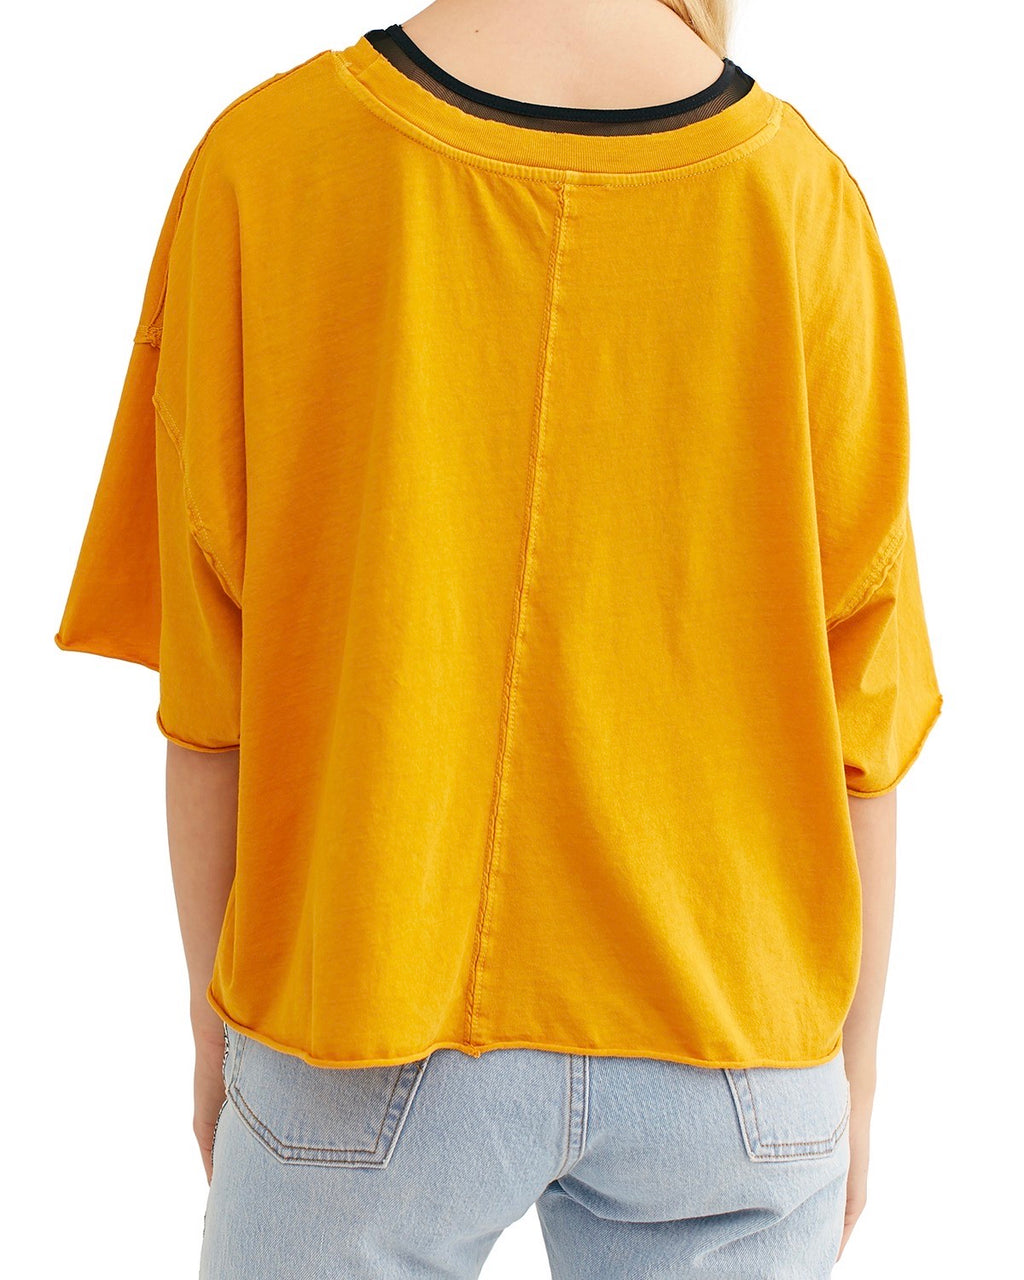 Free People - Honey Tee in More Colors